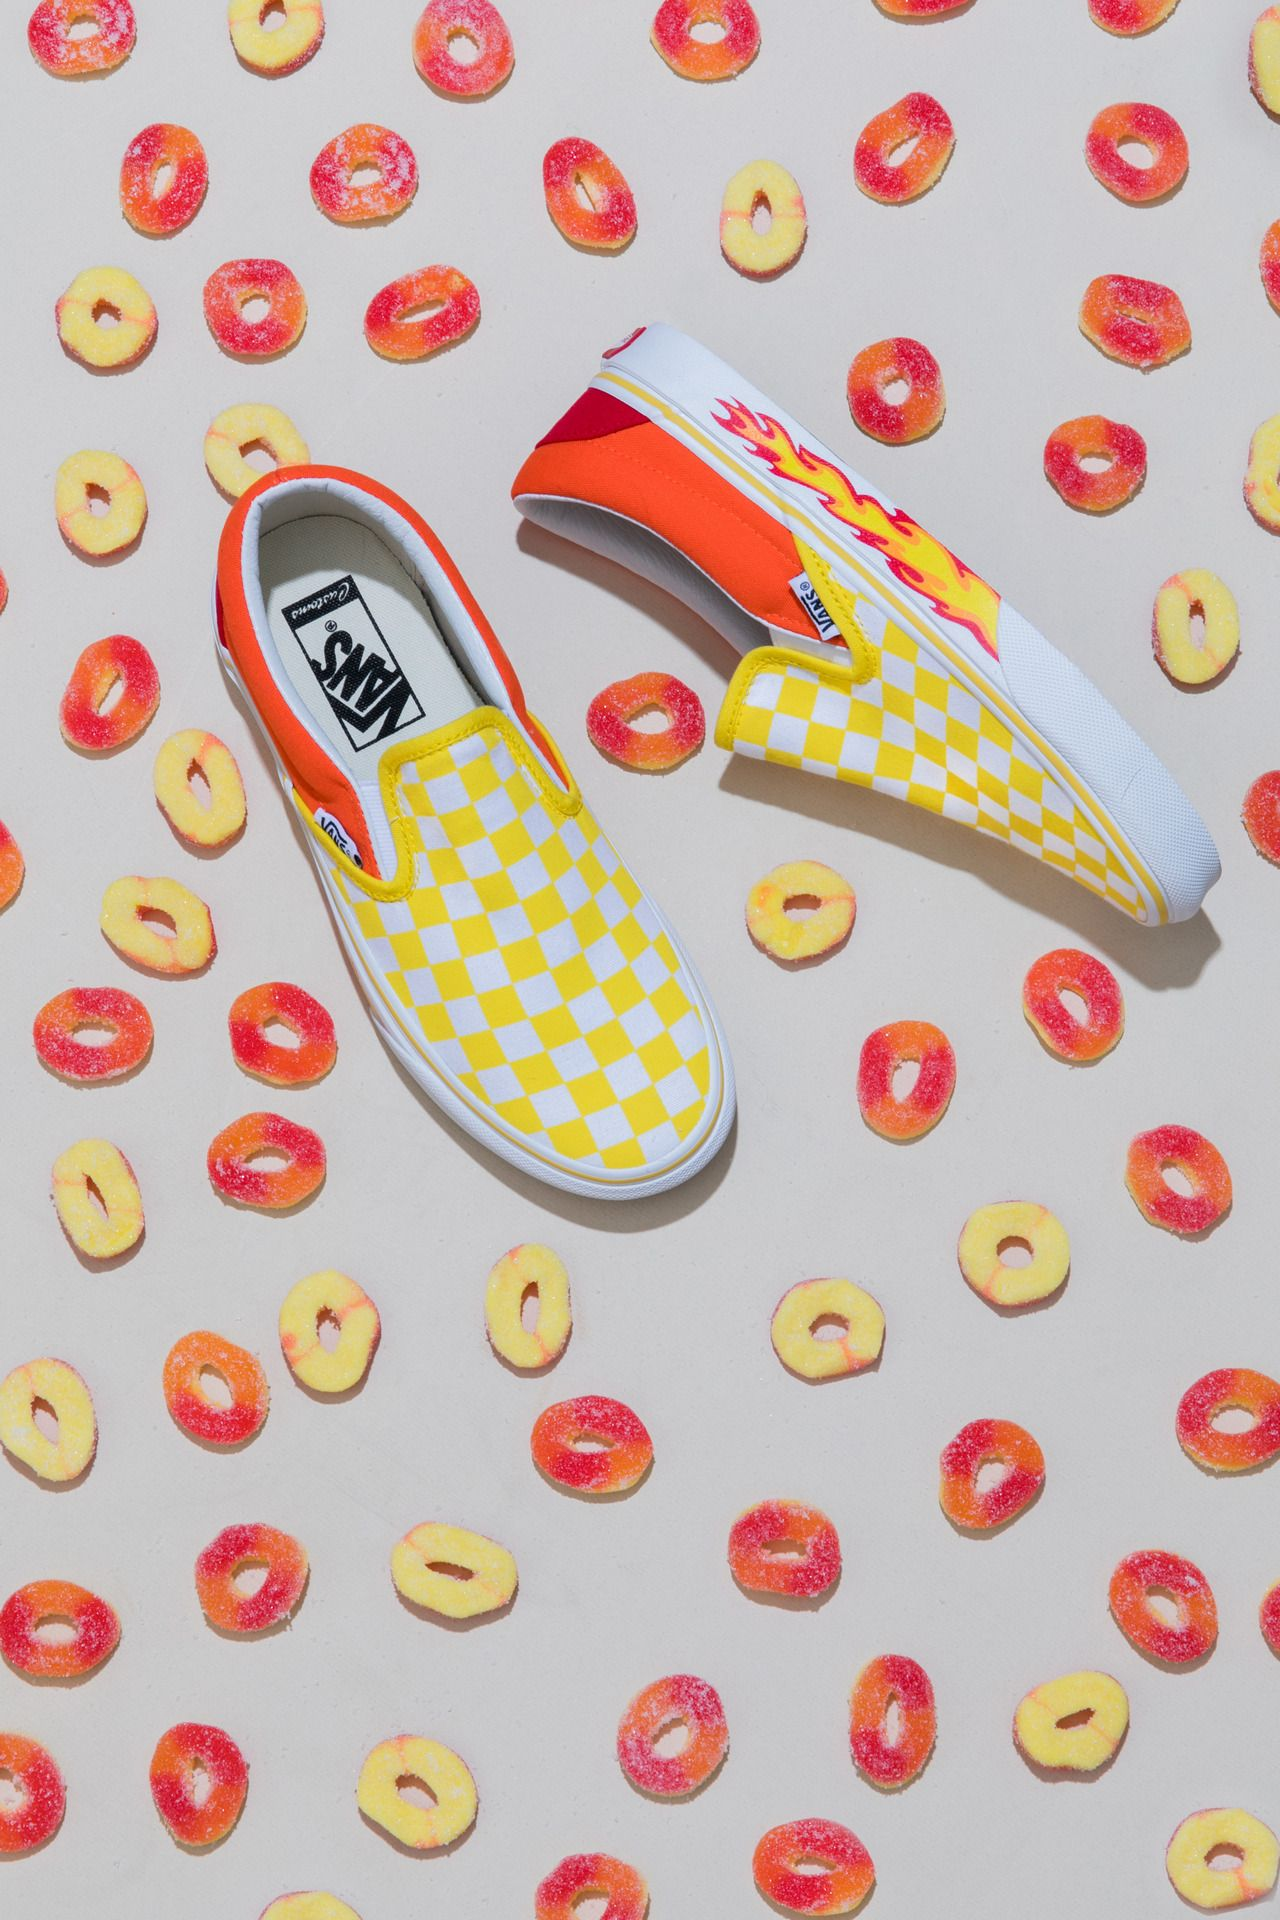 a18f8f9140 Peachy keen  mix and match your favorite colors and patterns to design your  perfect pair of Vans. Make your own at vans.com customs